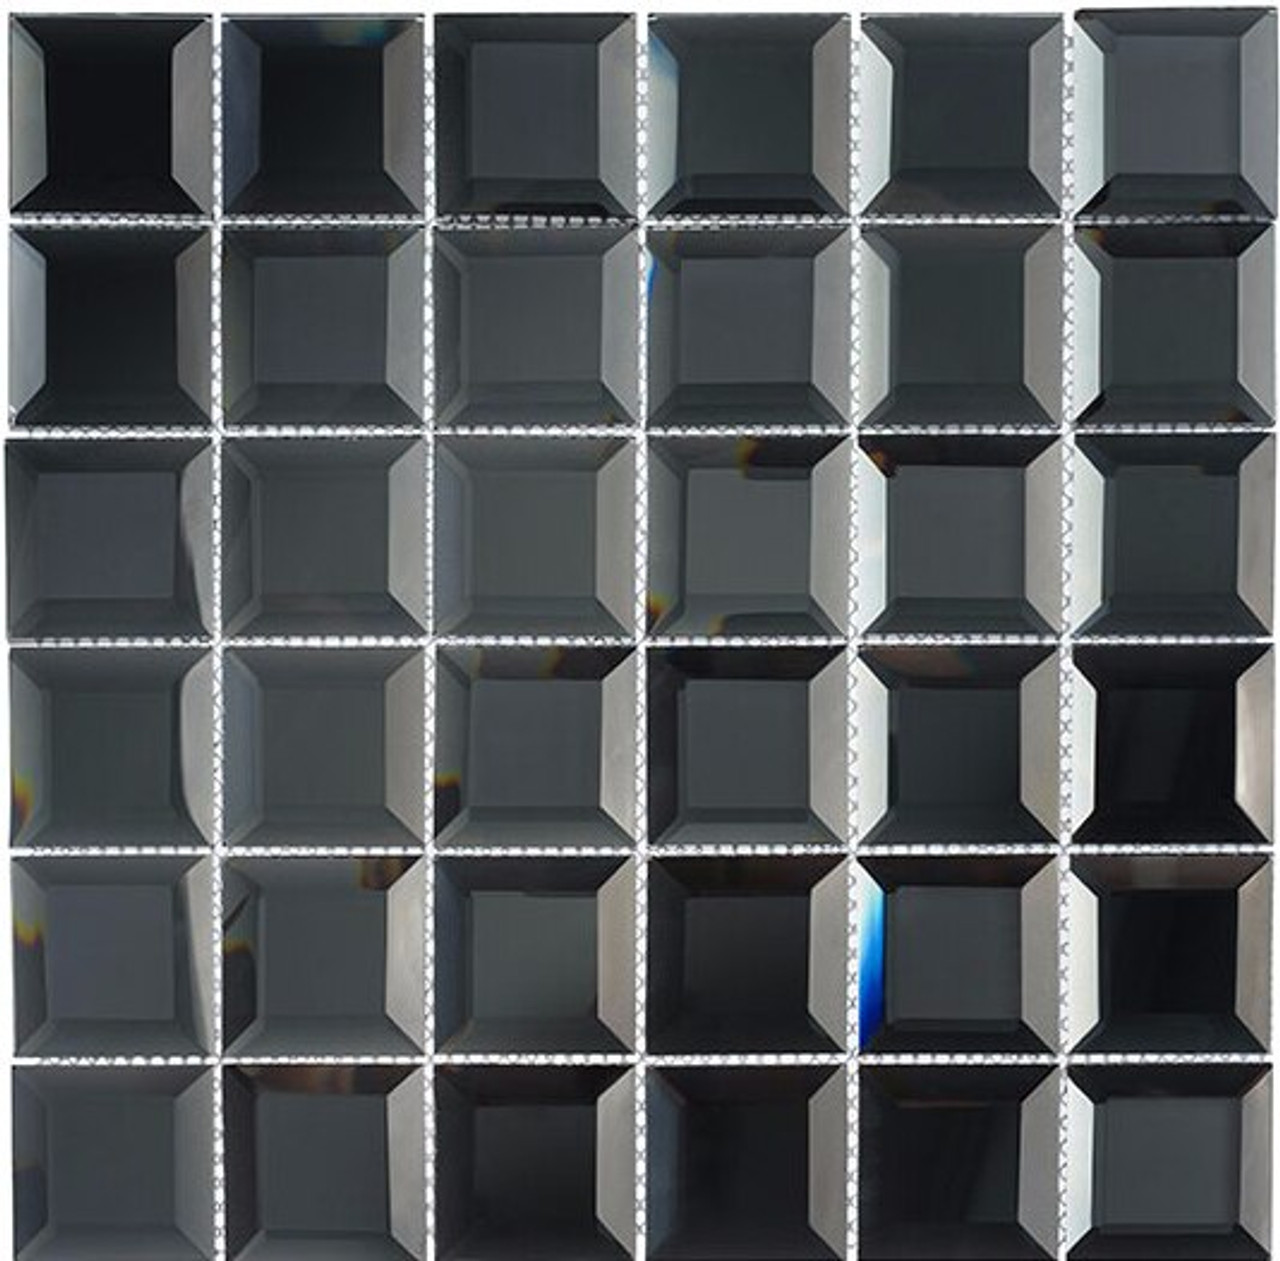 Bella Glass Tiles Checkers Hematite Squares